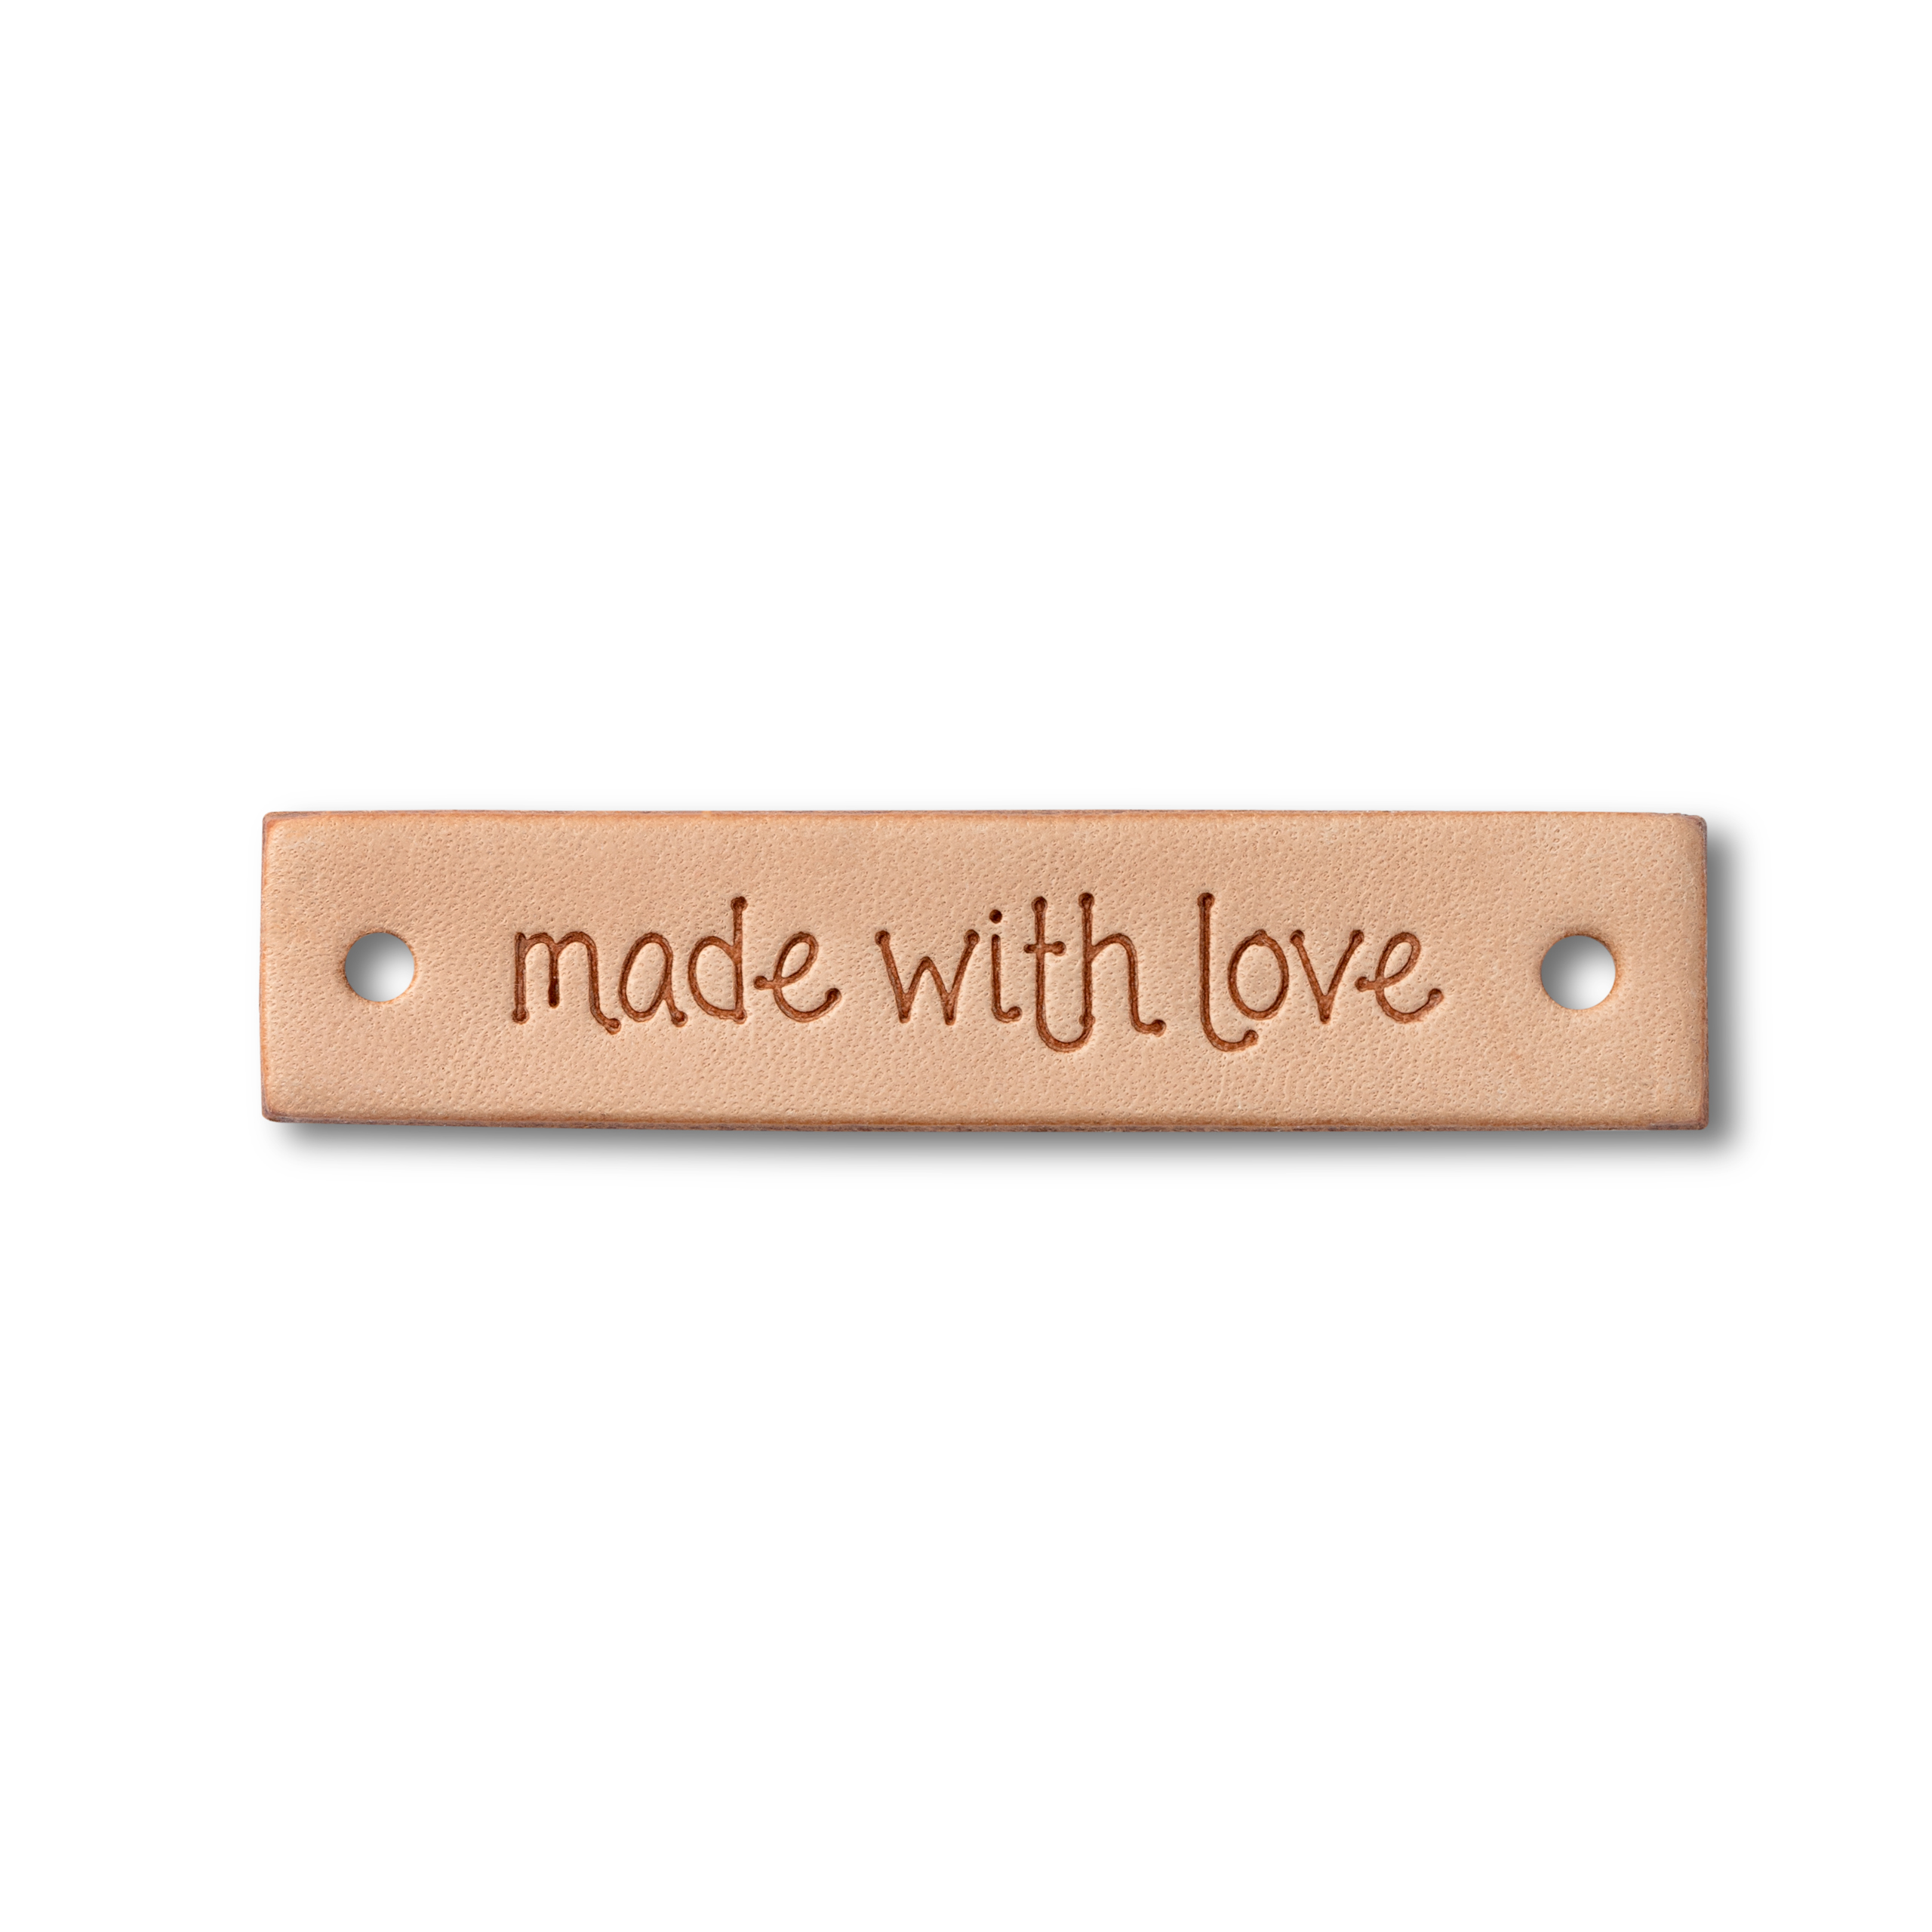 Made with love -merkki nahka 60x13 mm